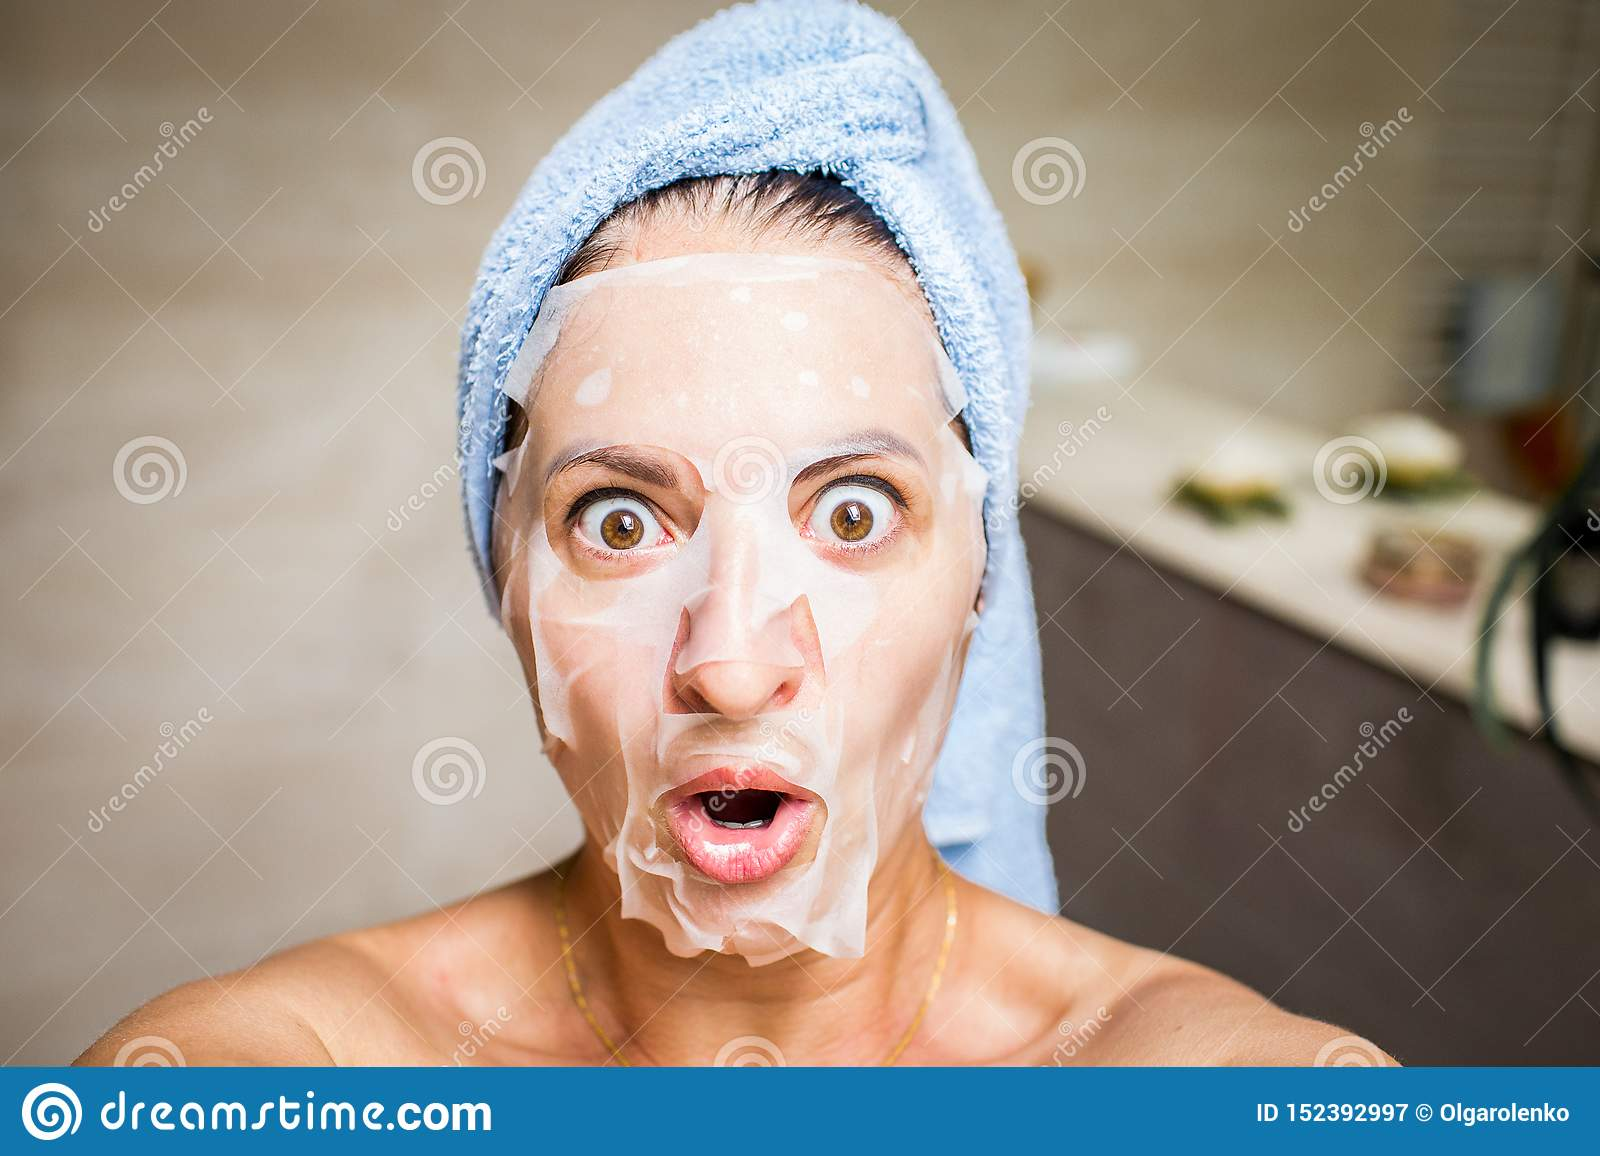 Fun selfie of a young woman with white mask on her face and light blue towel on her head